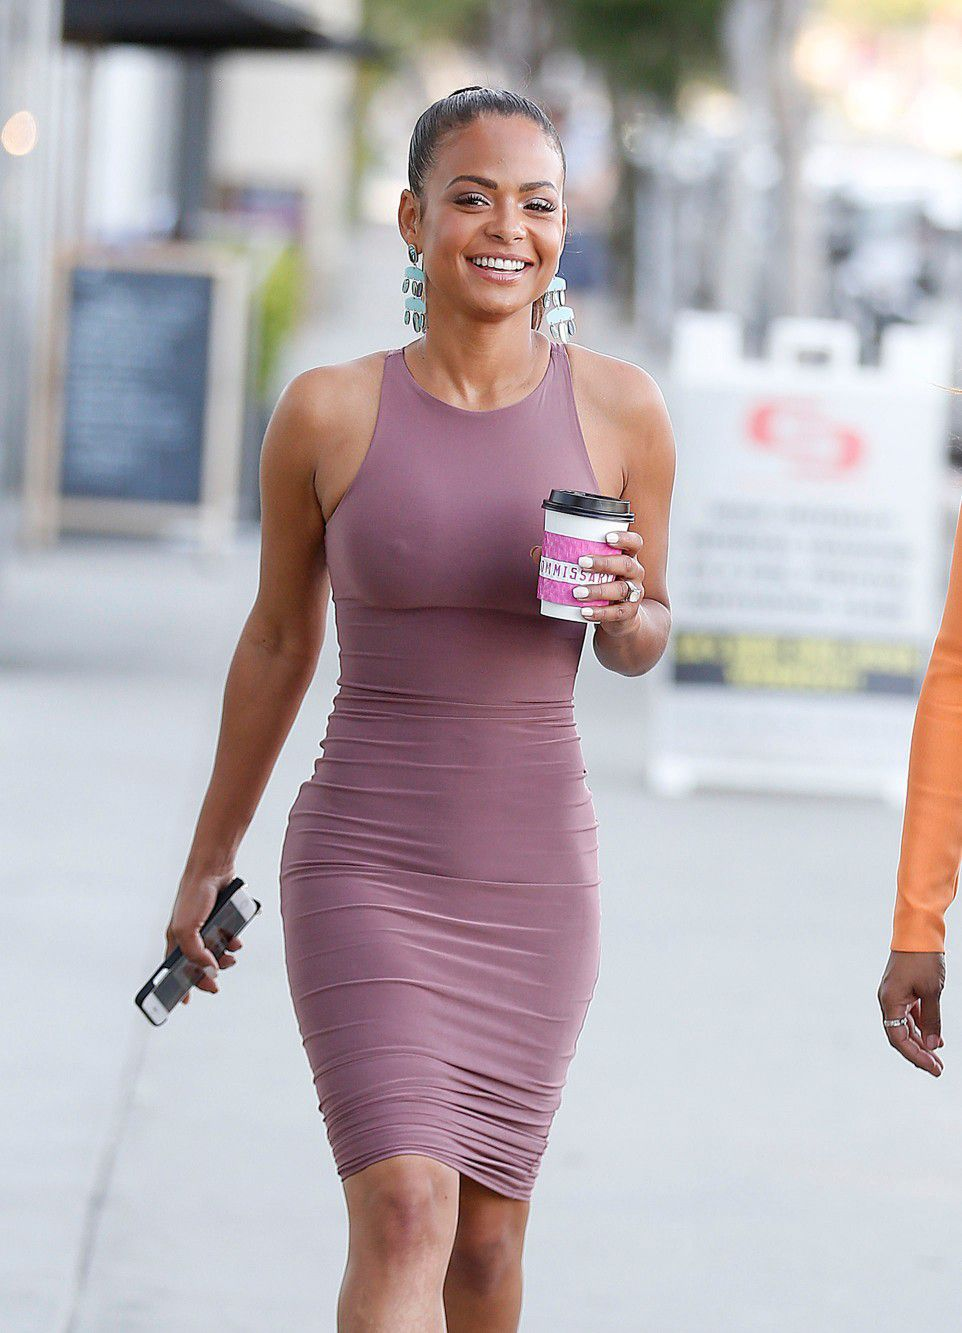 christina-milian-pokies-in-tight-dress-while-out-in-west-hollywood-3611